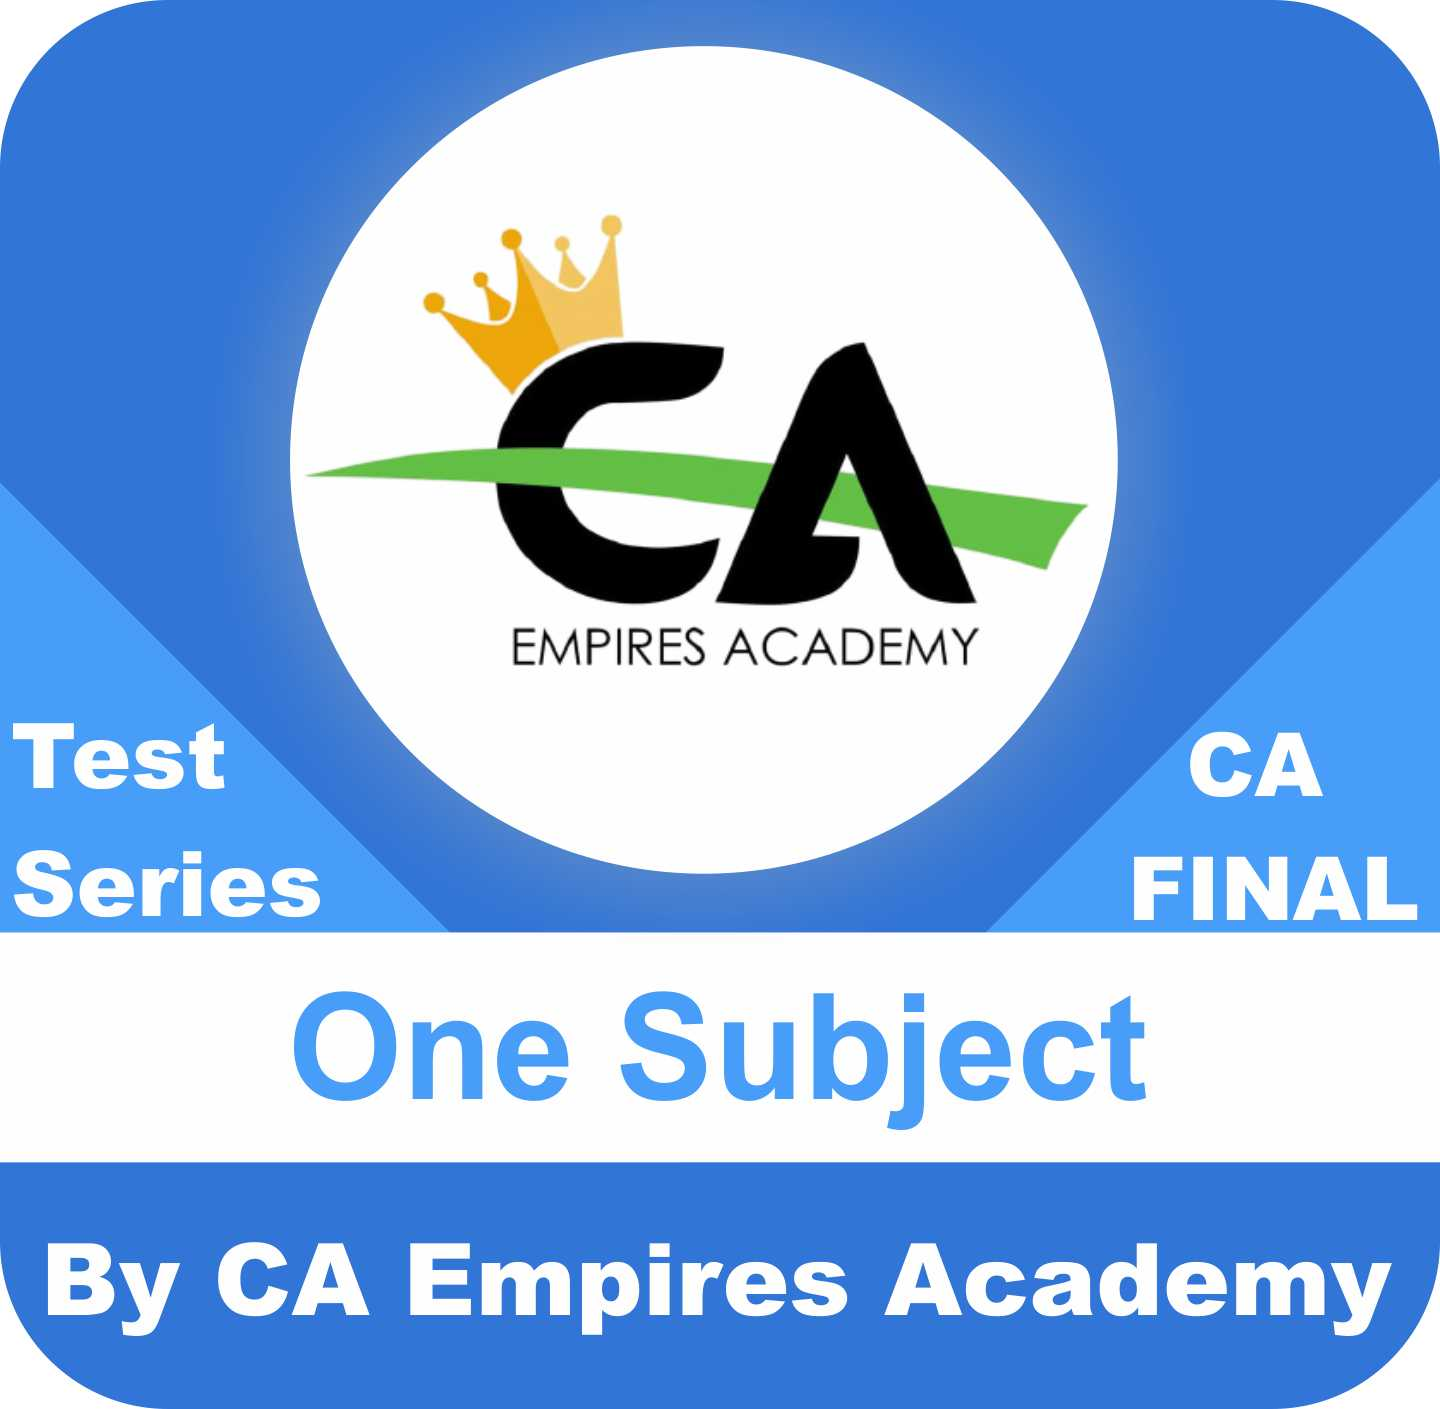 Any 1 Subject - Test Series in Bronze Plan